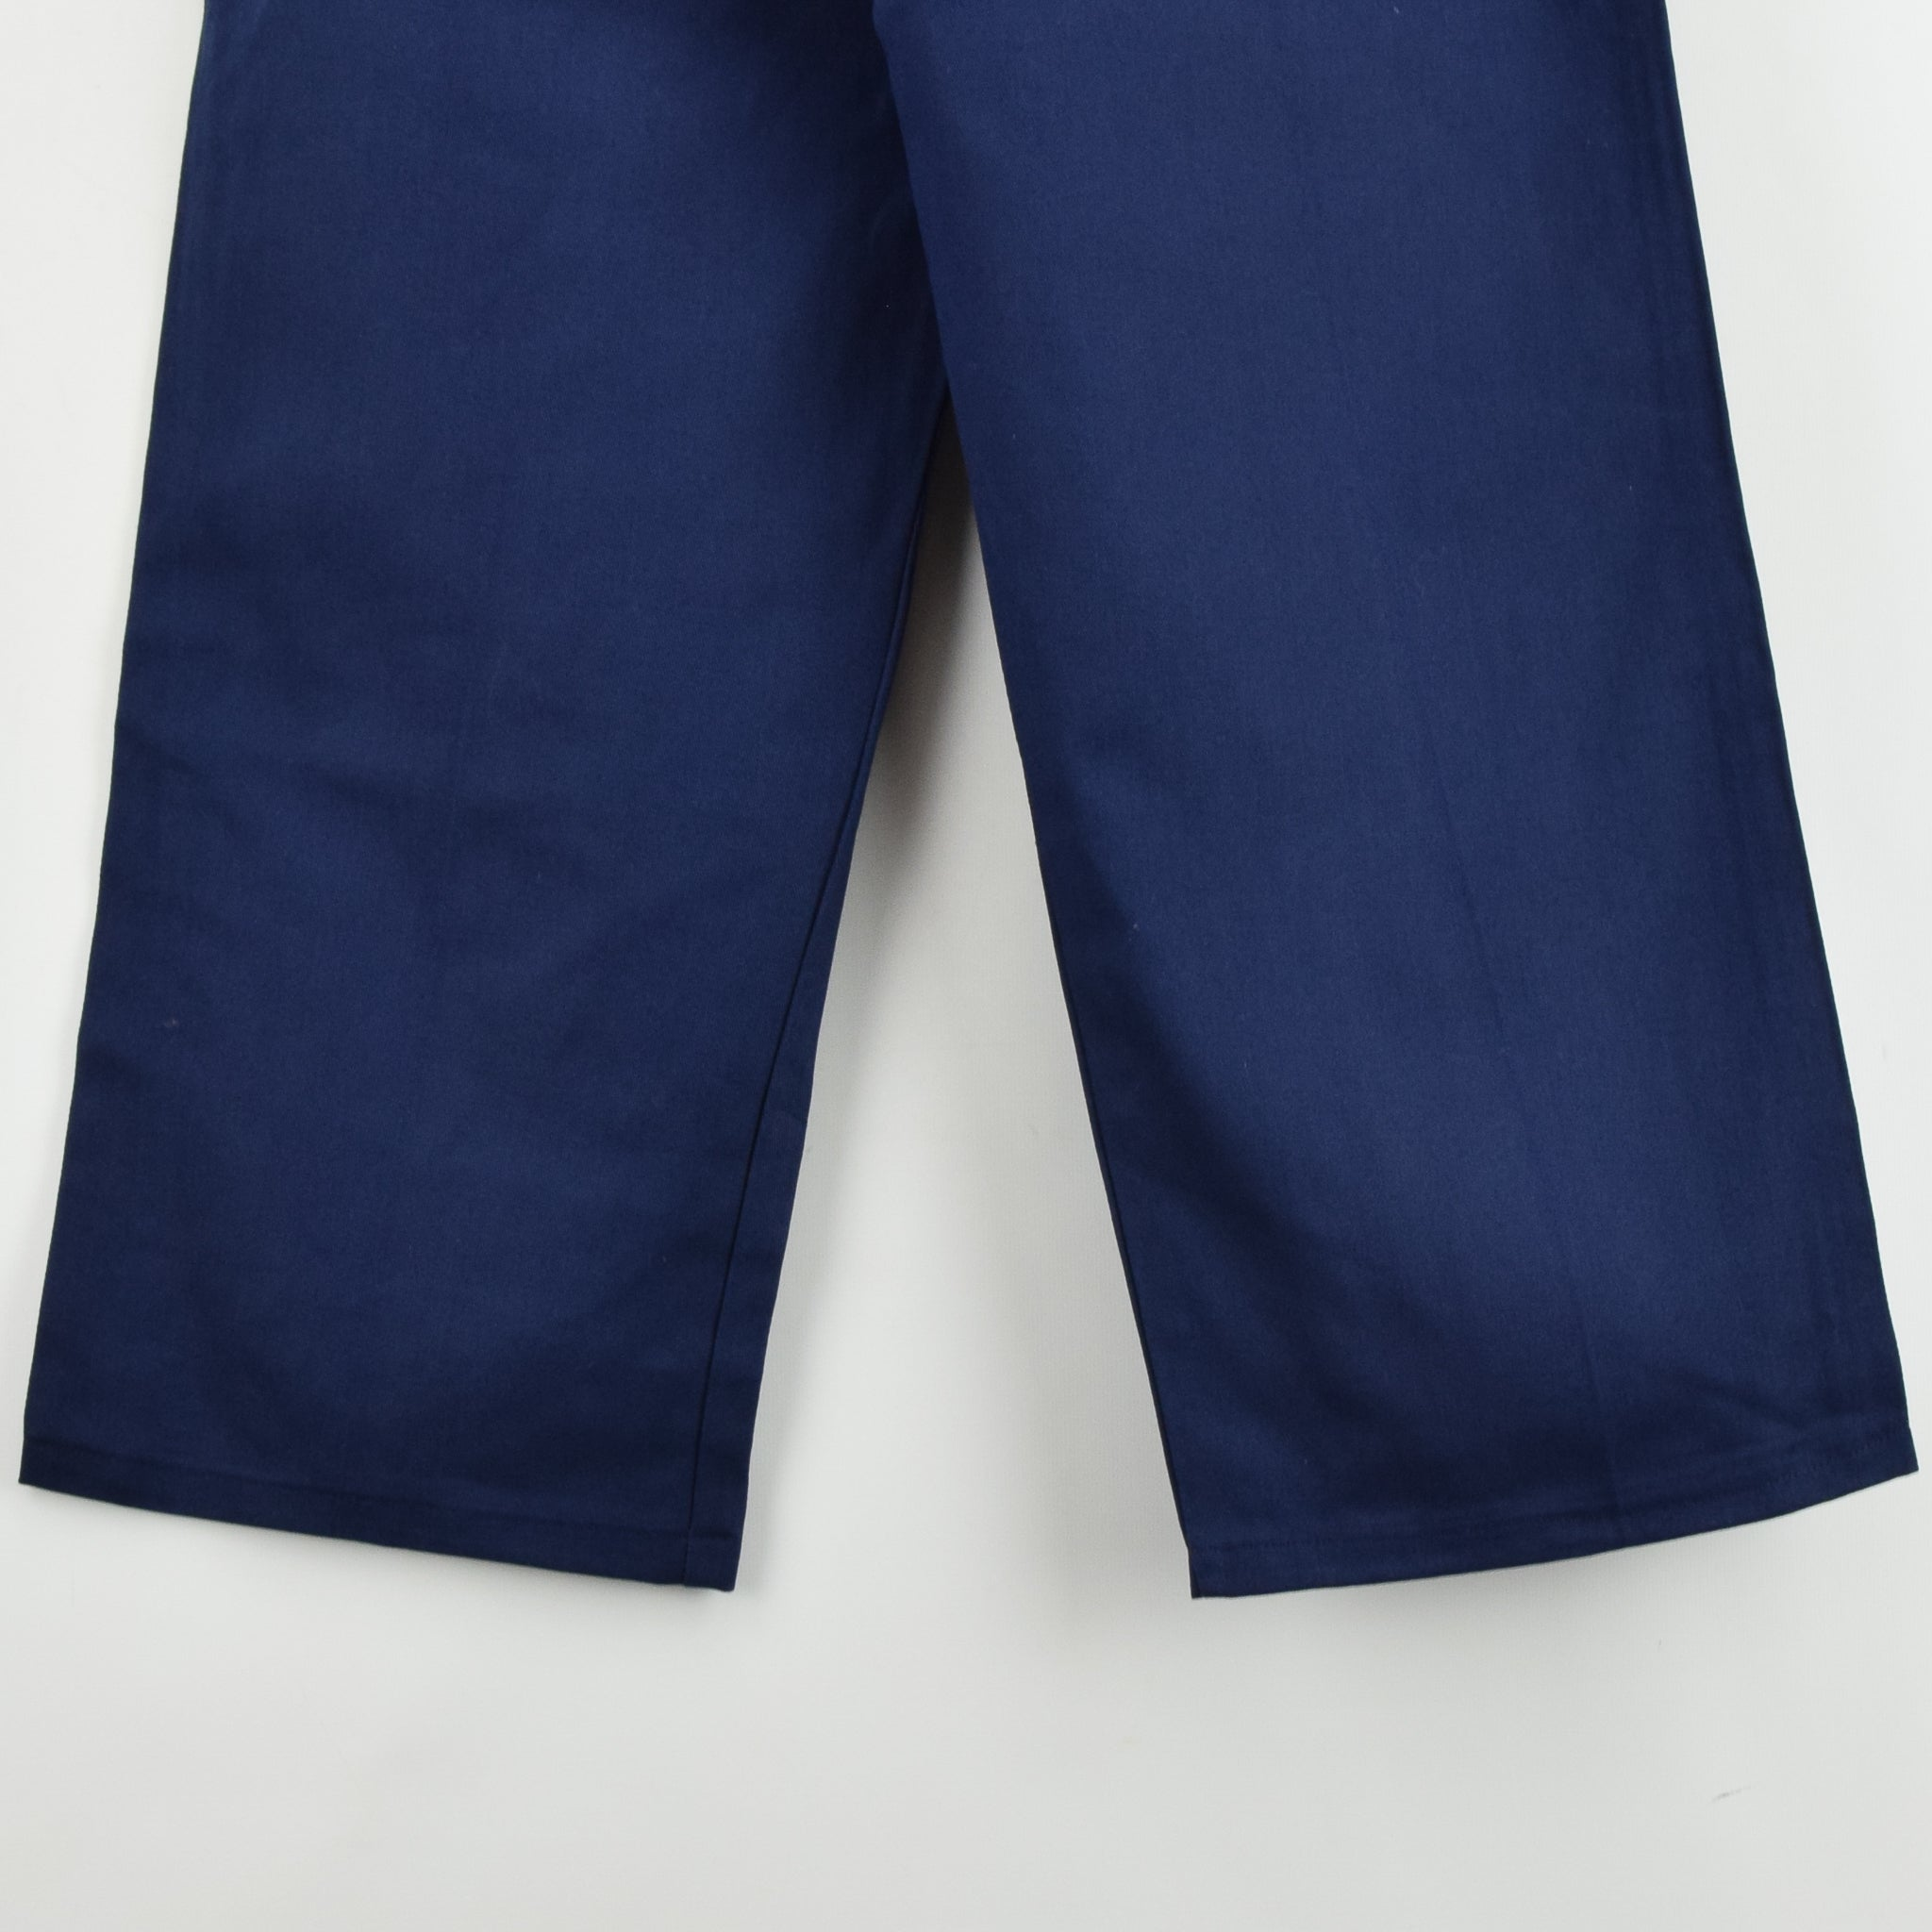 Vintage Deadstock Blue French Style Work Utility Trousers Italy Made 30 W 28 L back hem